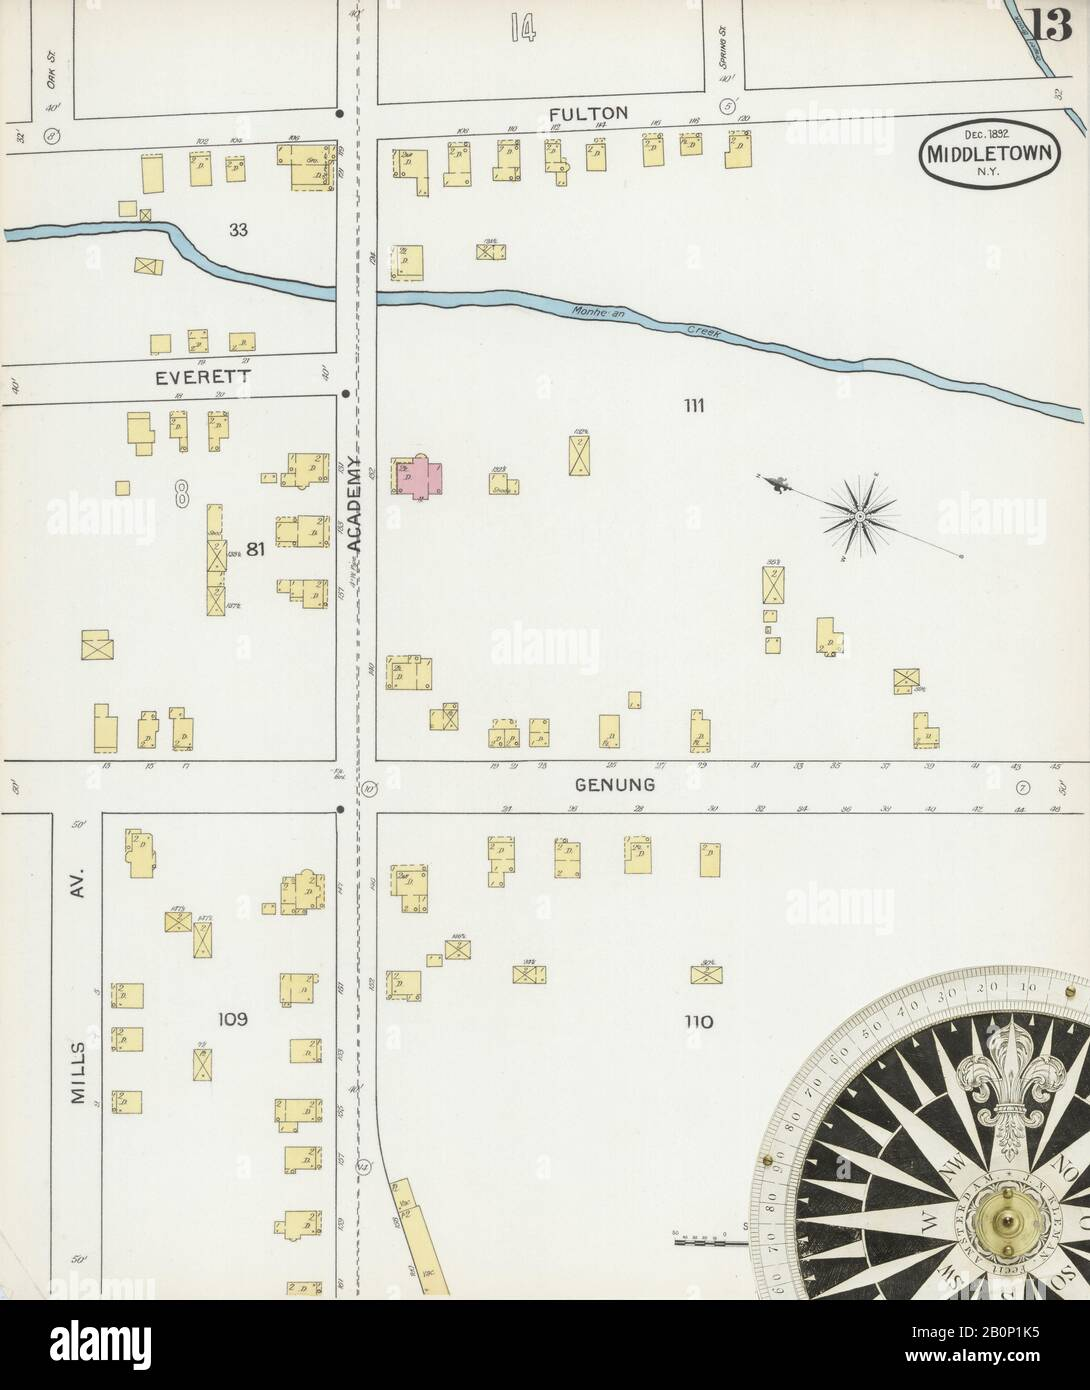 Image 13 of Sanborn Fire Insurance Map from Middletown, Orange County, New York. Dec 1892. 17 Sheet(s), America, street map with a Nineteenth Century compass Stock Photo